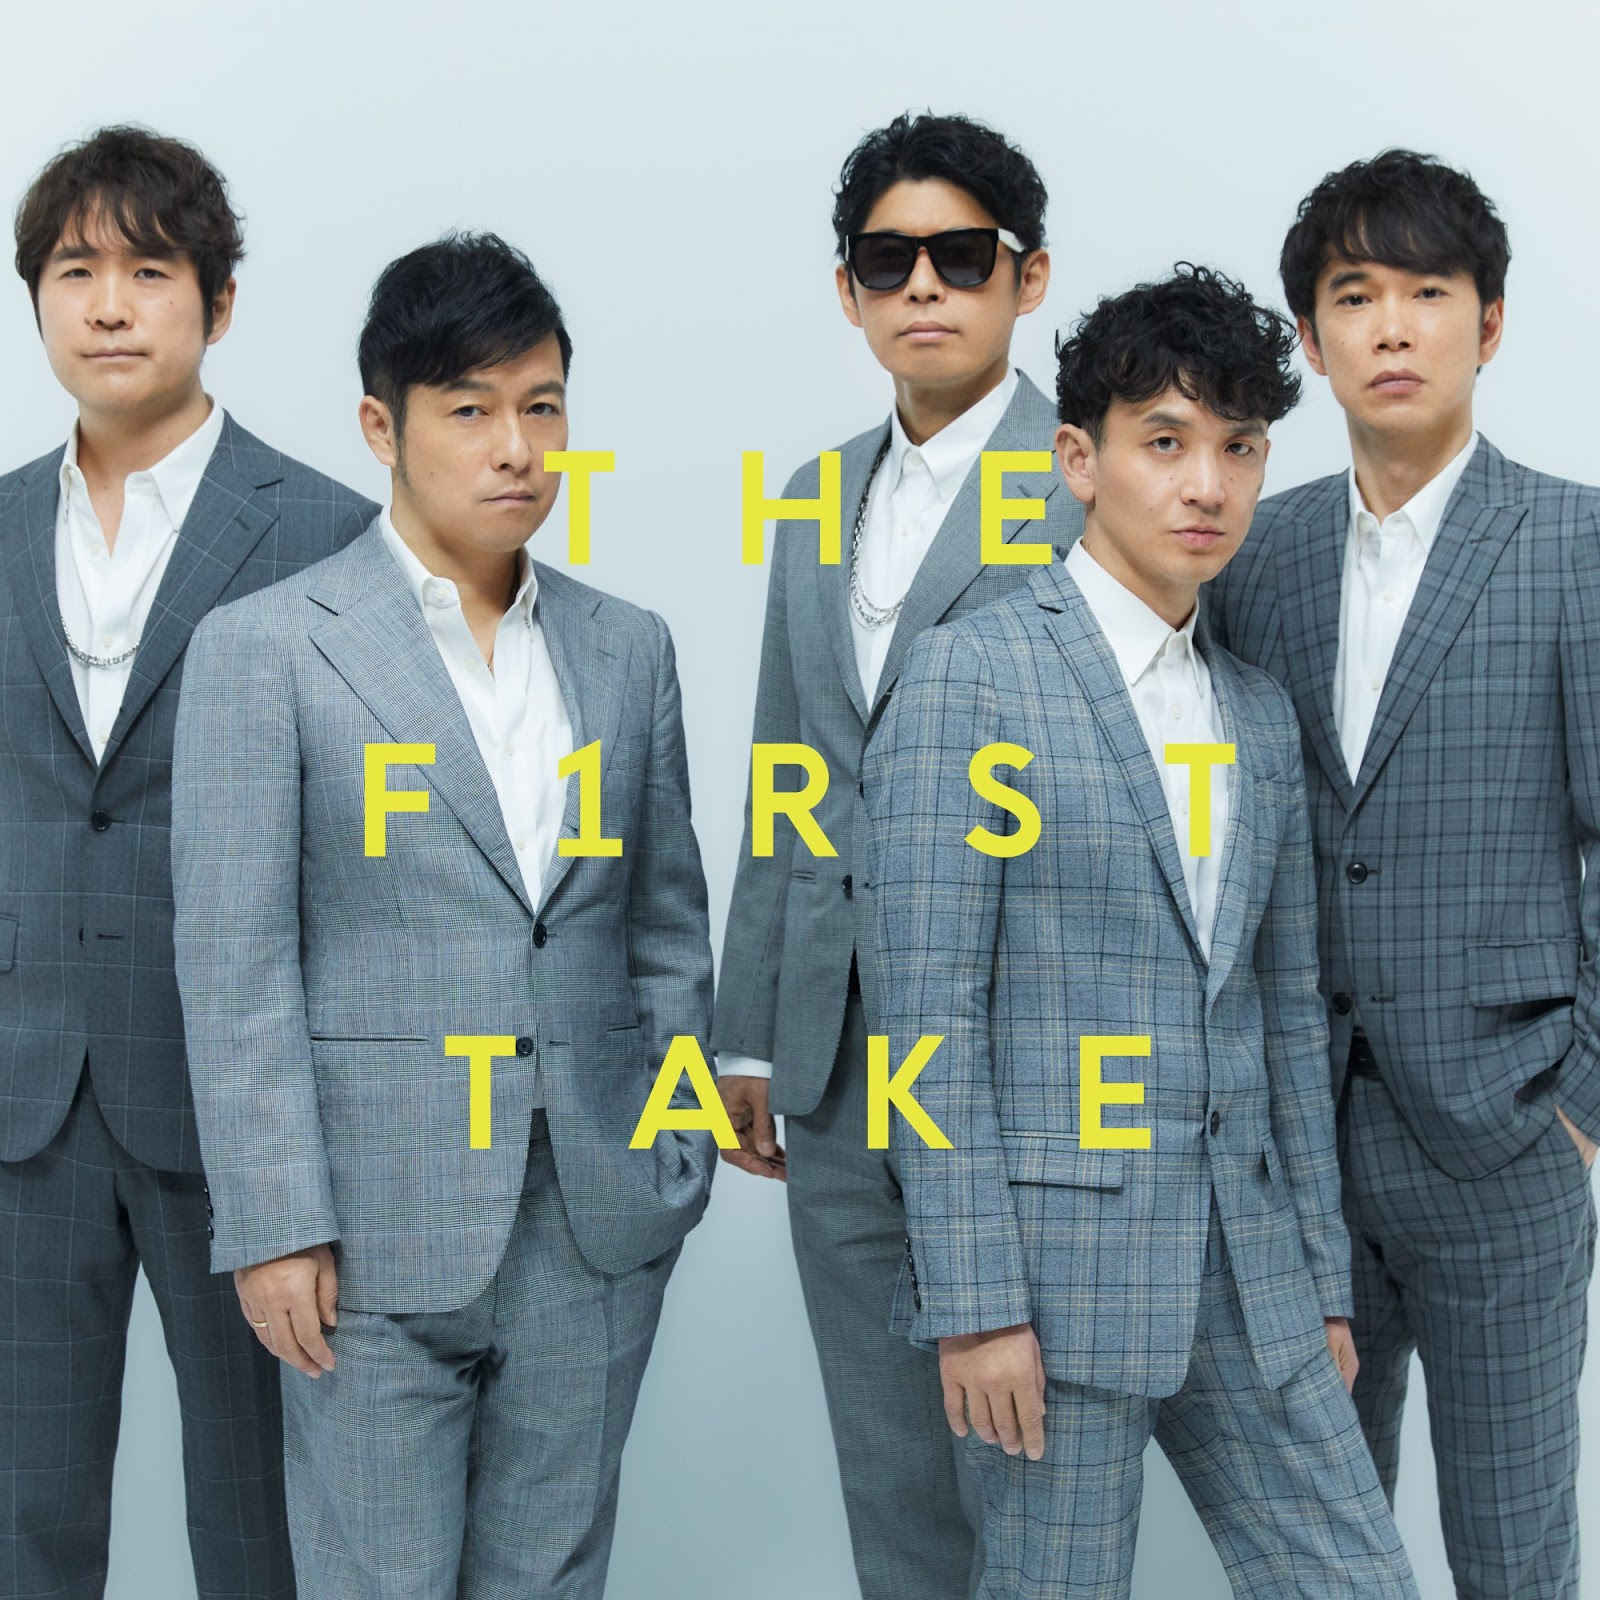 ゴスペラーズ - ひとり From THE FIRST TAKE [2020.07.31+MP3+RAR]